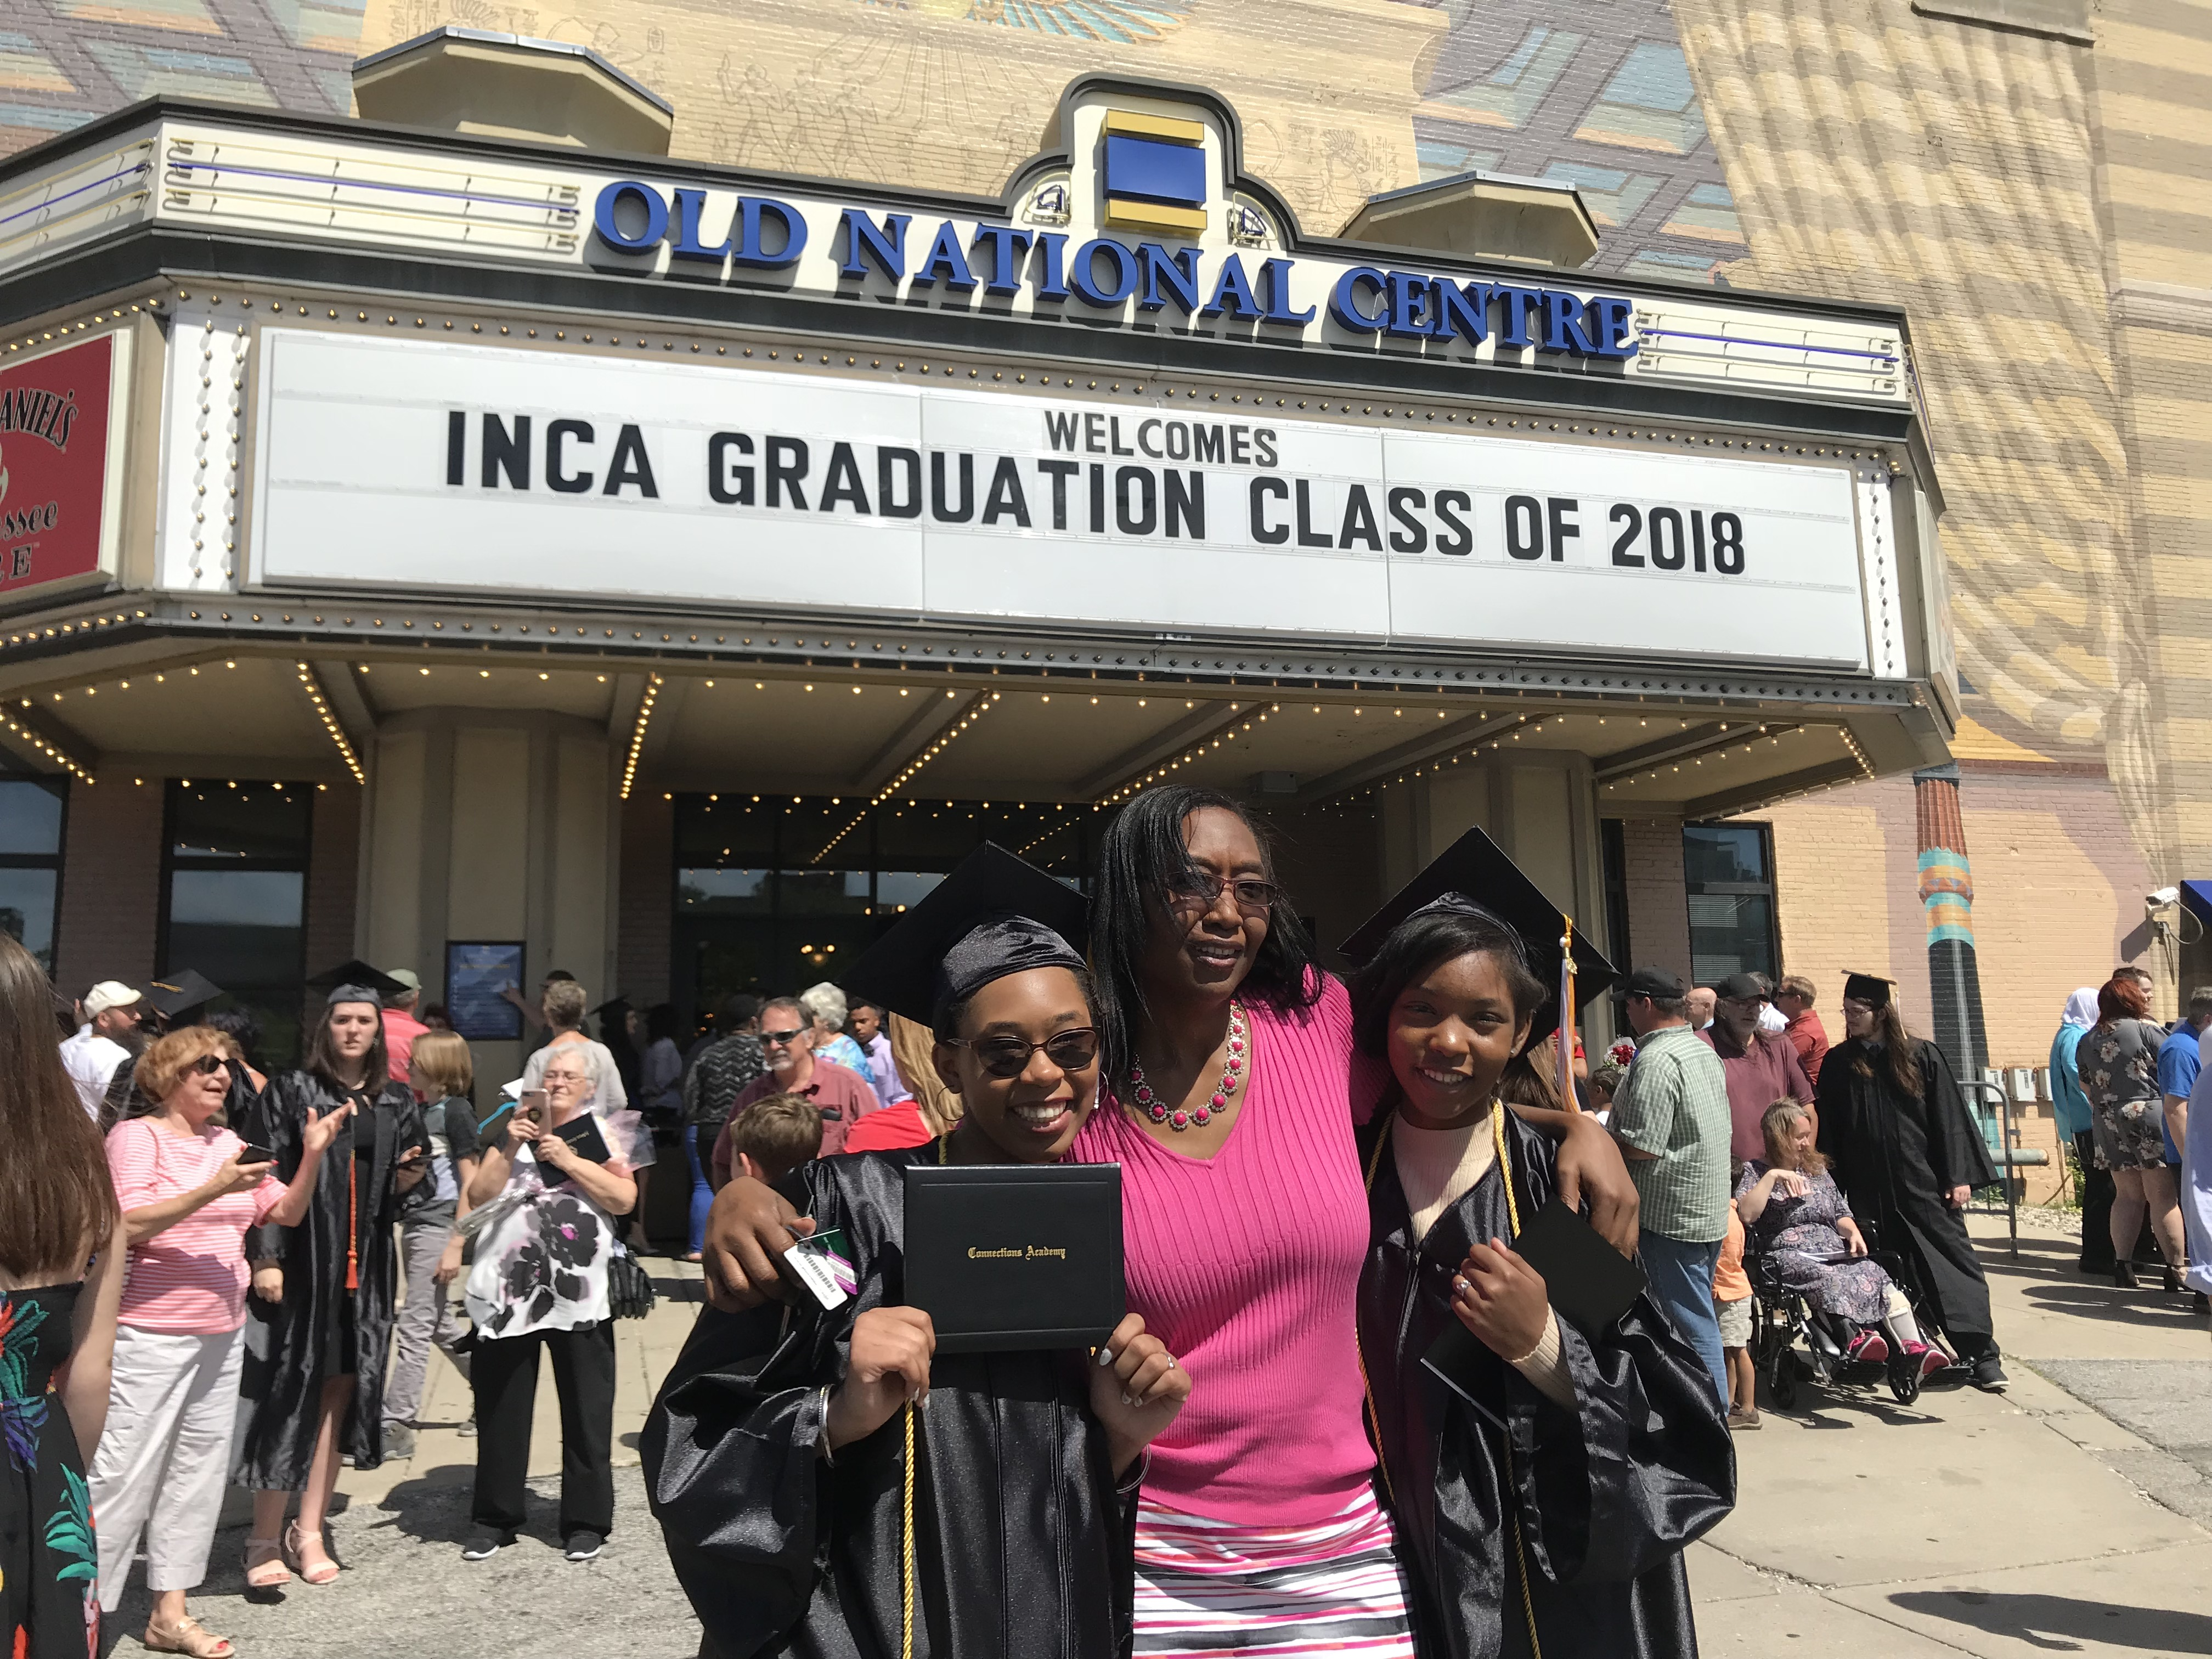 Angela Freel poses with her daughters, Dasani Freel and Cazariah Haskins, outside Old National Center. Dasani Freel and Haskins graduated Monday from Indiana Connections Academy.